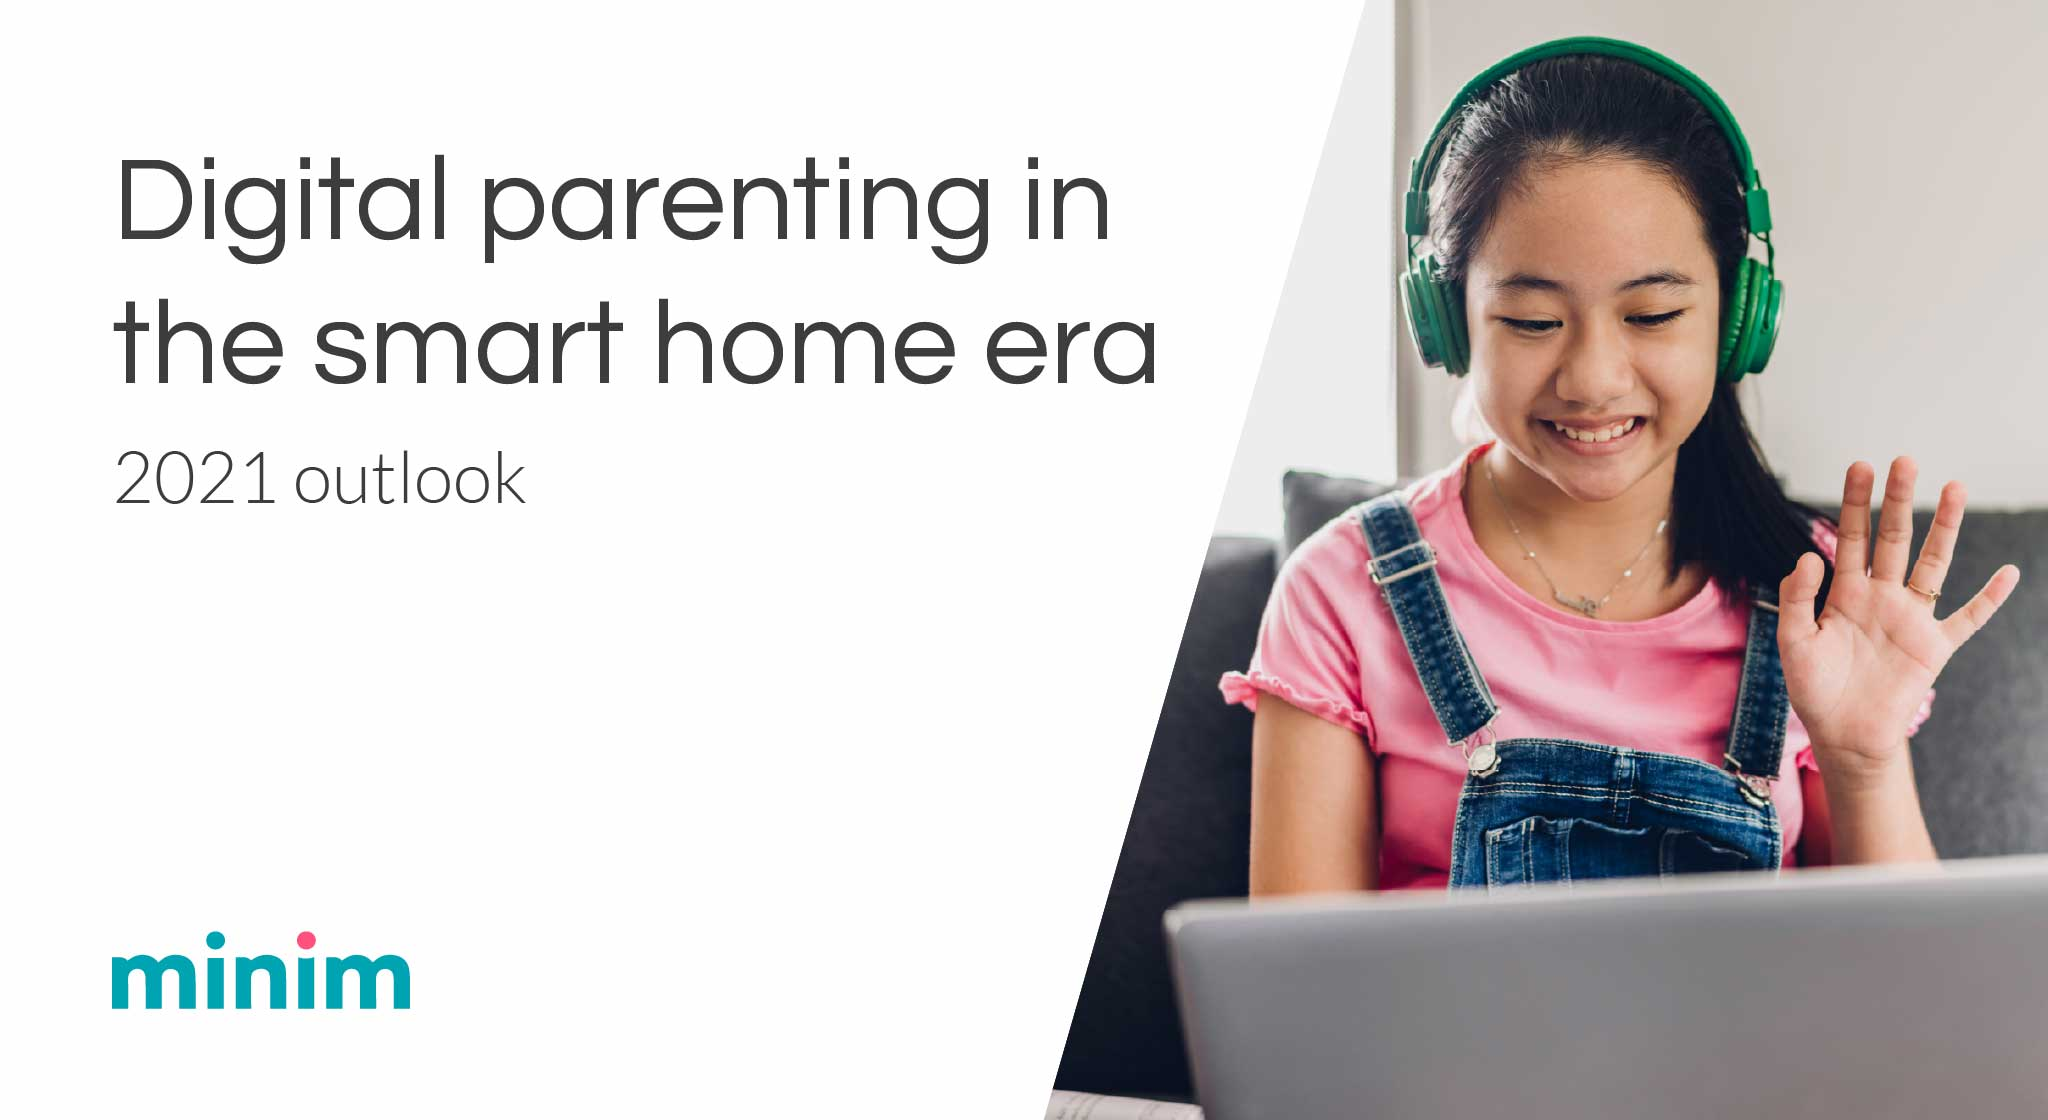 Digital parenting in the smart home era